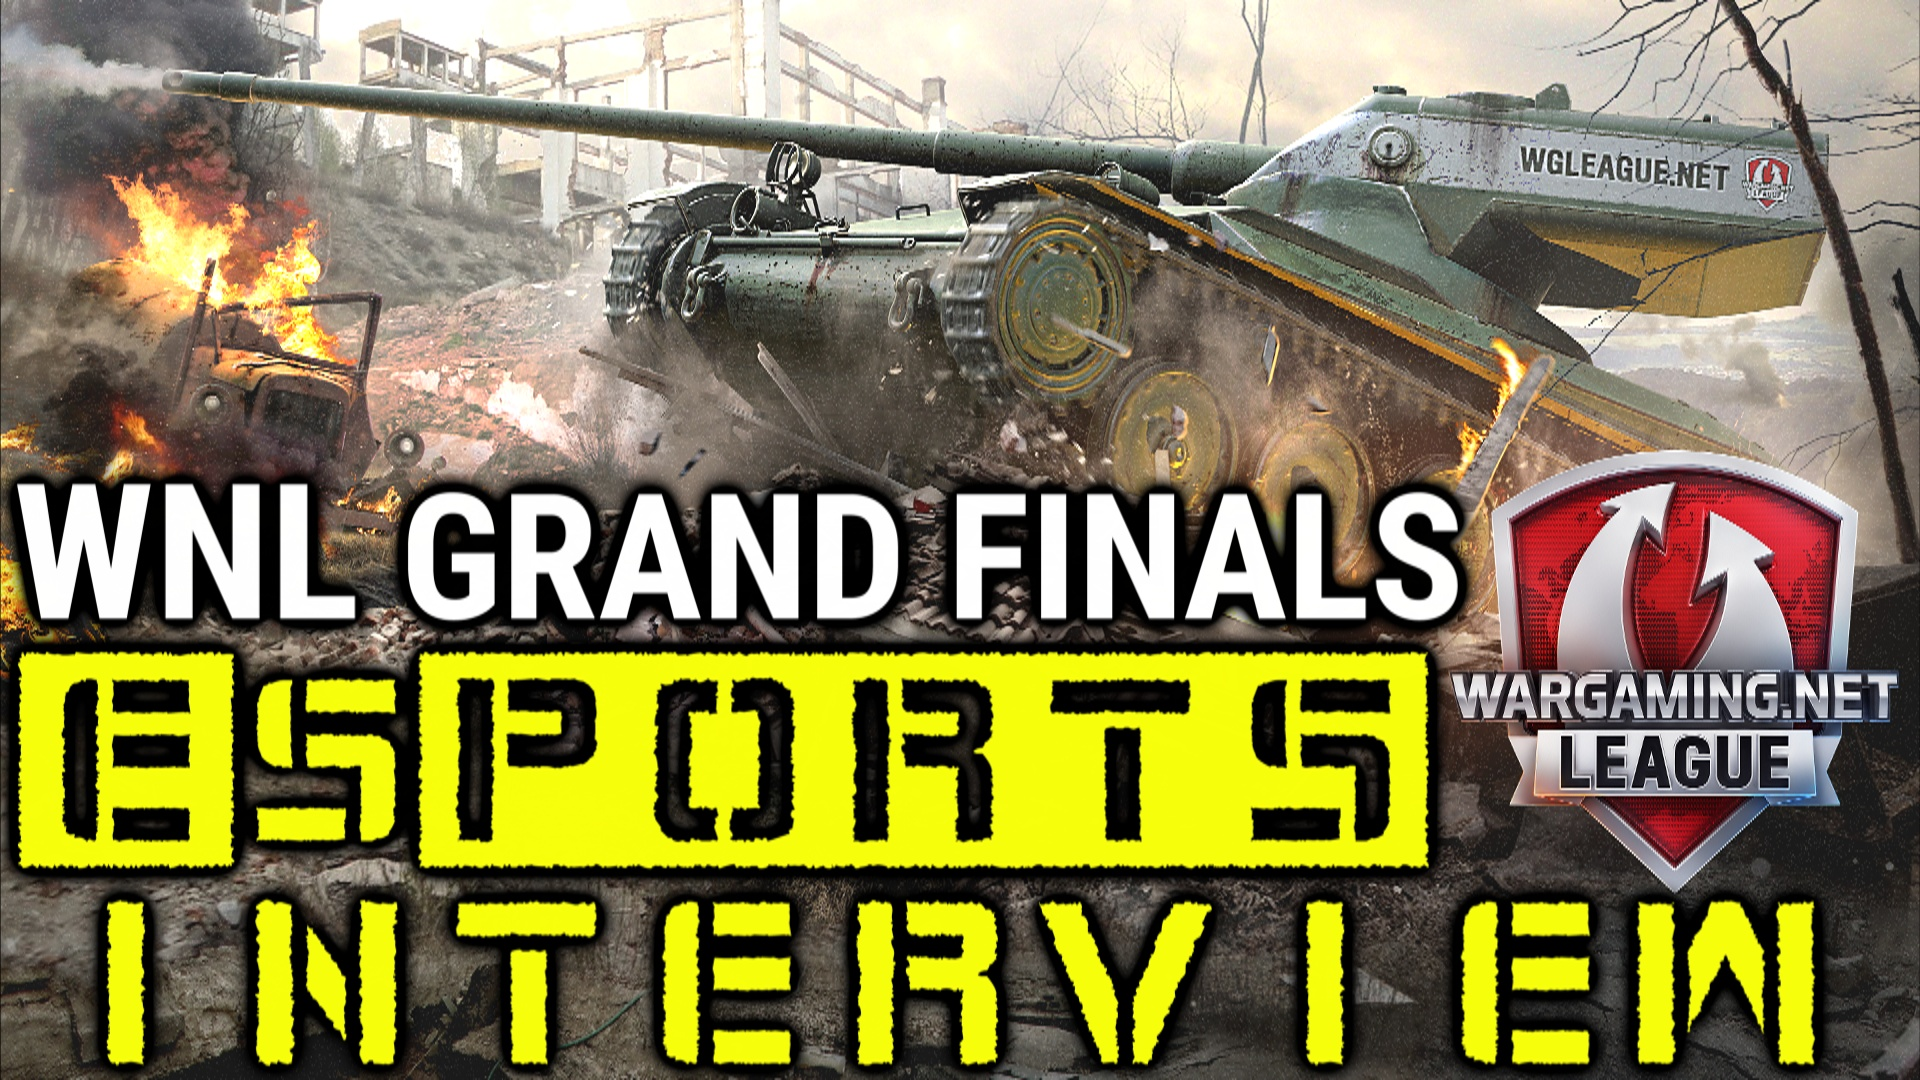 Wargaming.net League (WoT) - Grand Finals eSports Interview